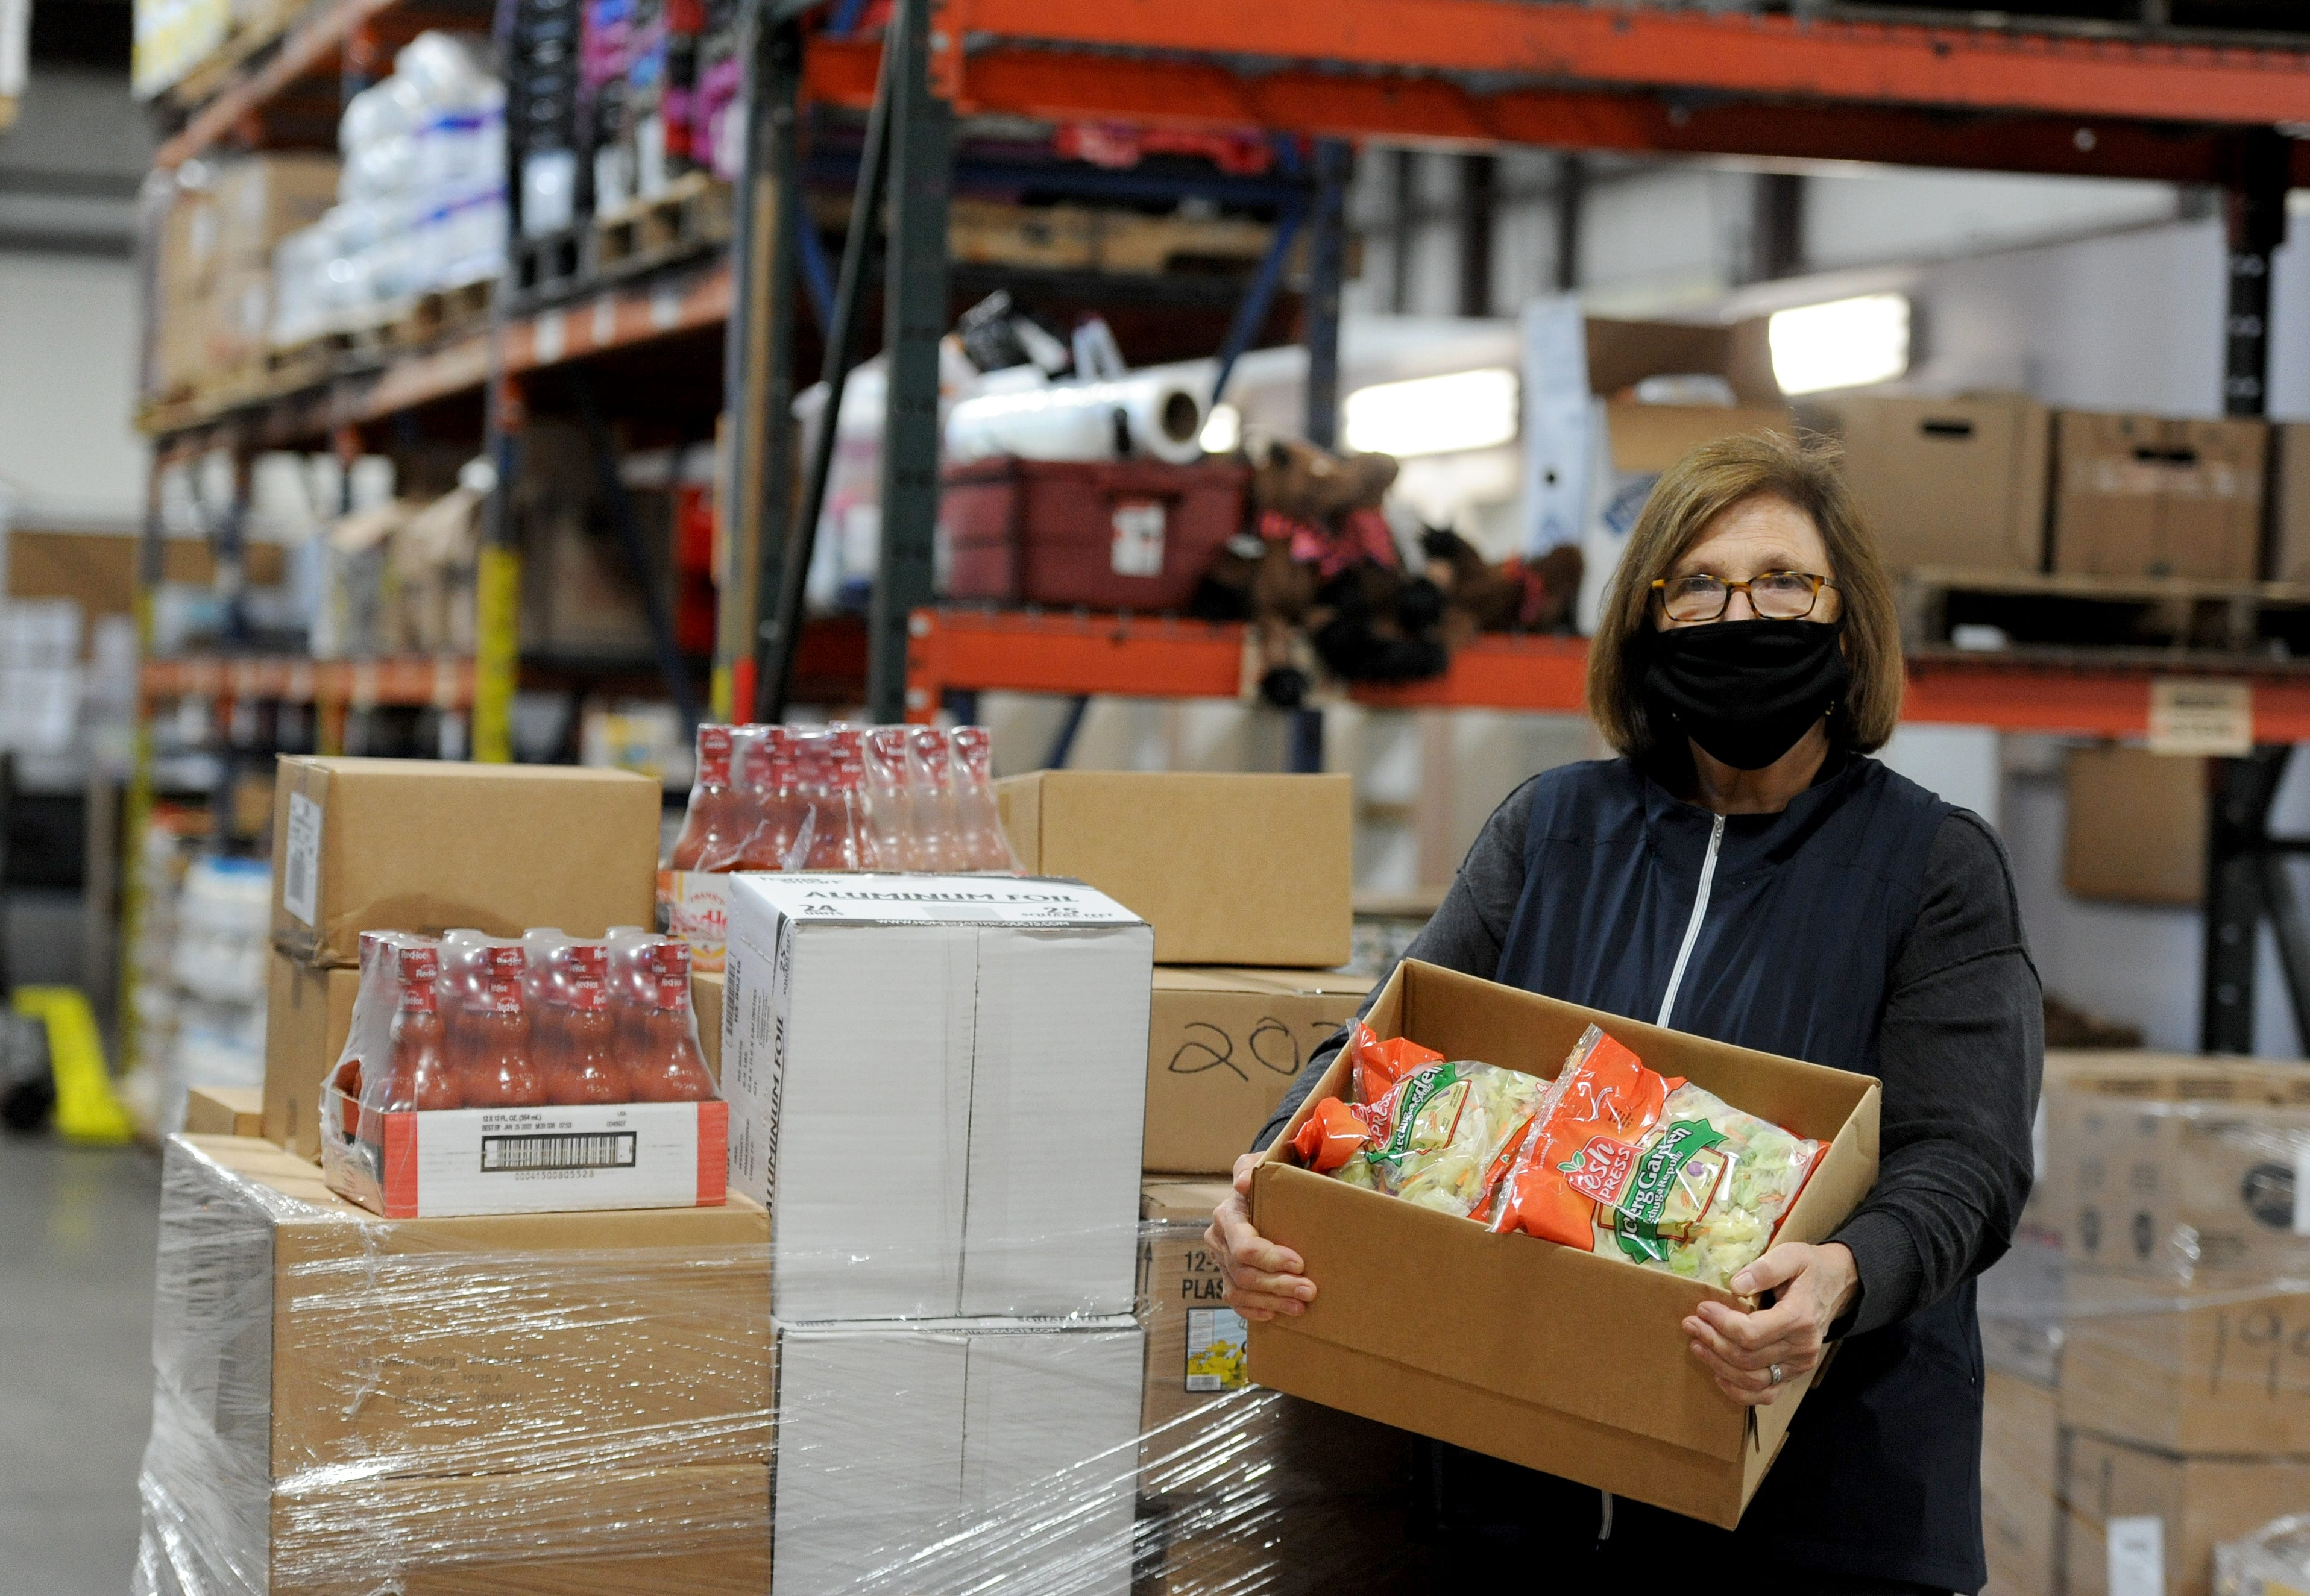 Four decades into her career, Greater Boston Food Bank leader still sees a  growing need